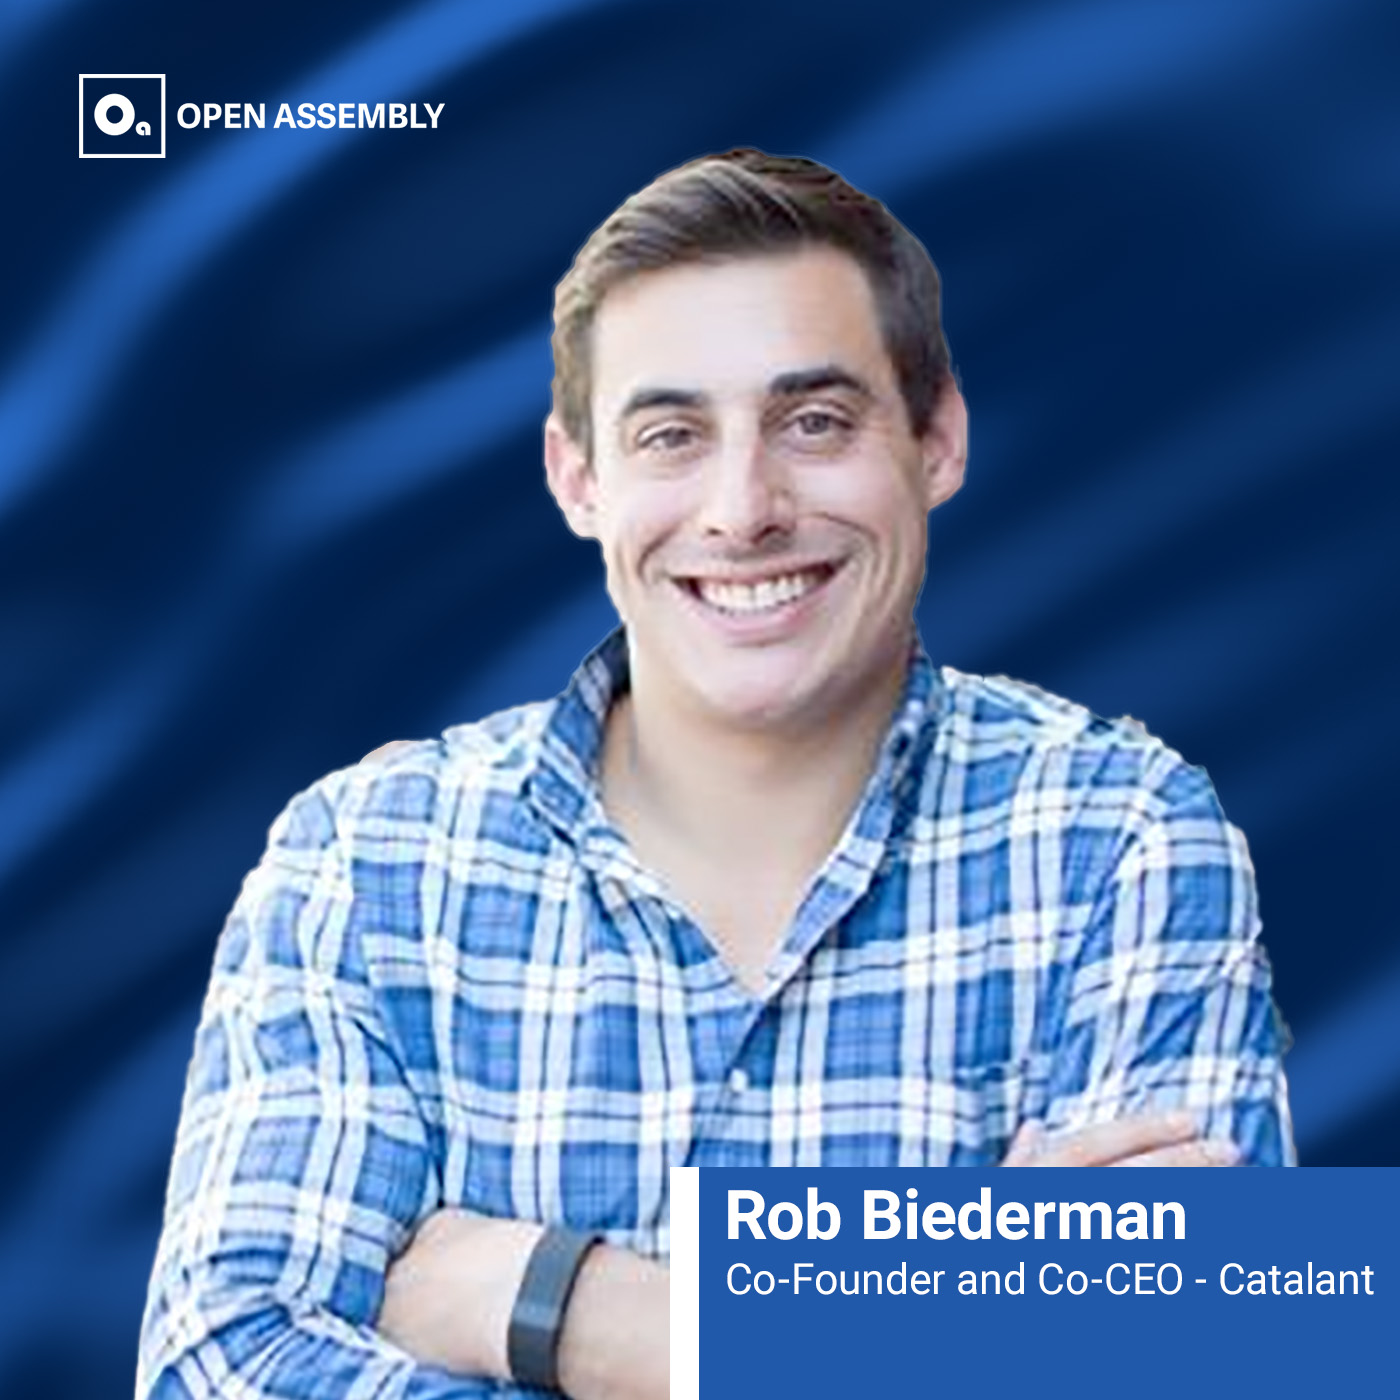 Rob Biederman Co-CEO and Co-Founder Catalant